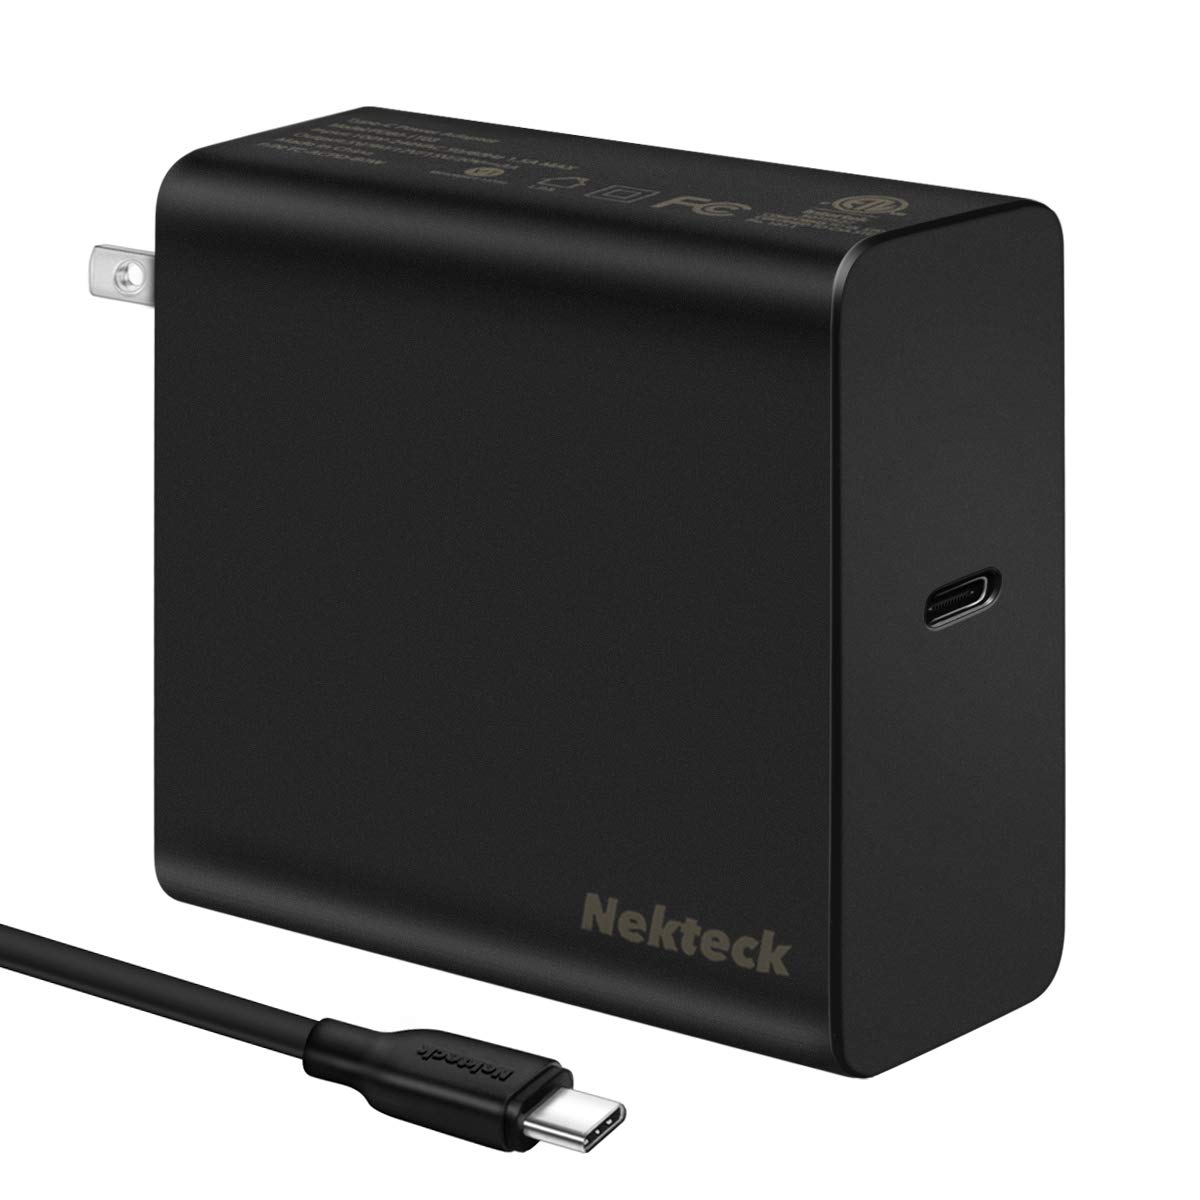 [USB-IF Certified] USB C Charger, Nekteck 60W Type-C Wall Charger Power Delivery PD3.0 Travel Charger Compatible with MacBook Pro, 2018 MacBook Air iPad Pro, Pixel 3, Galaxy Note 9/ S9 with 6ft Cable